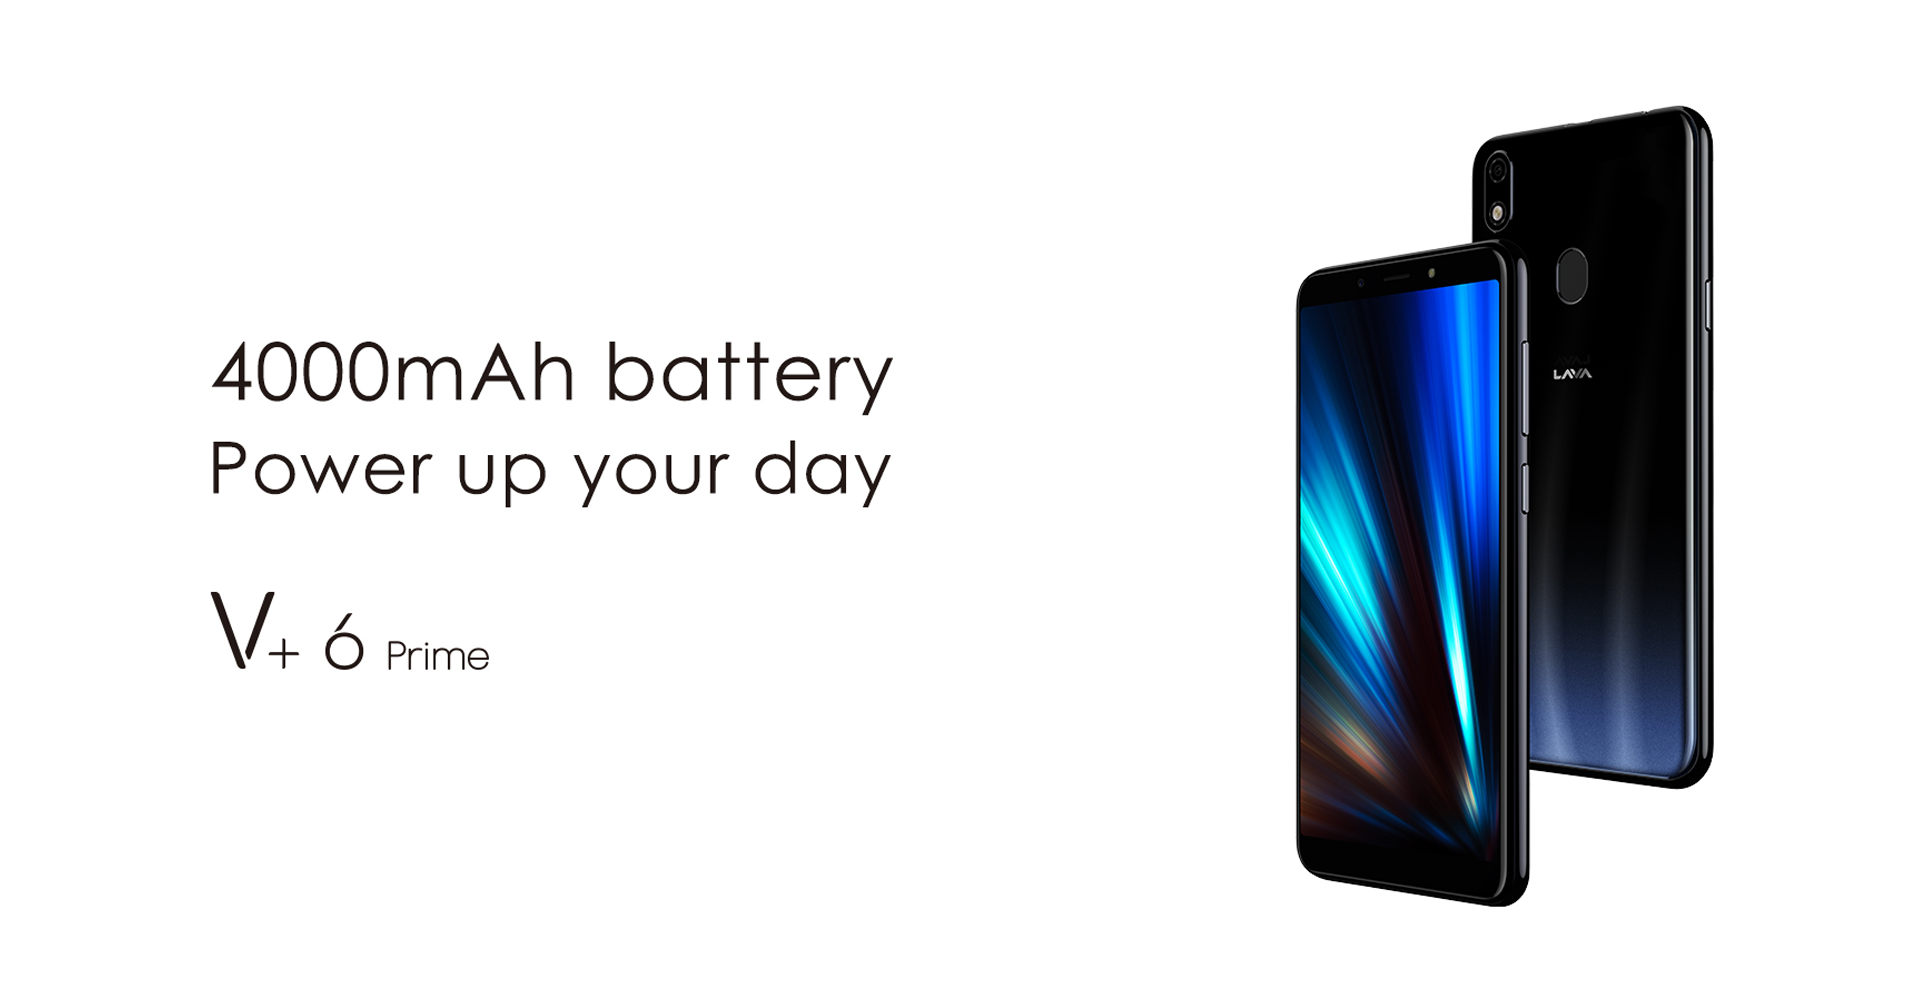 V+6 Prime-4000mAh battery Power up your day